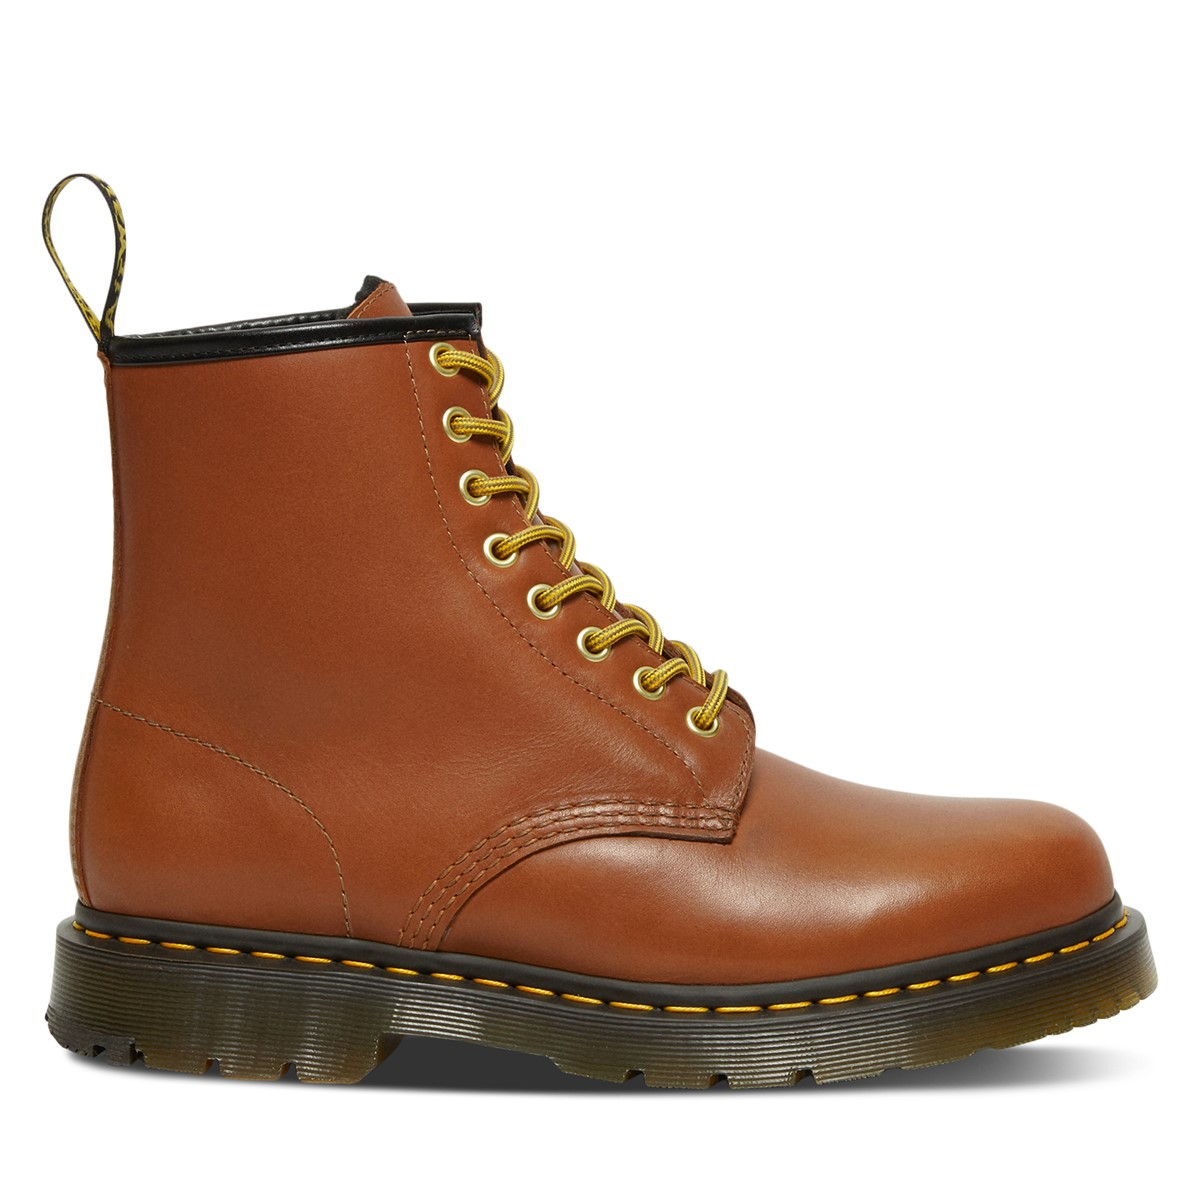 Men's 1460 Blizzard WP Boots in Tan